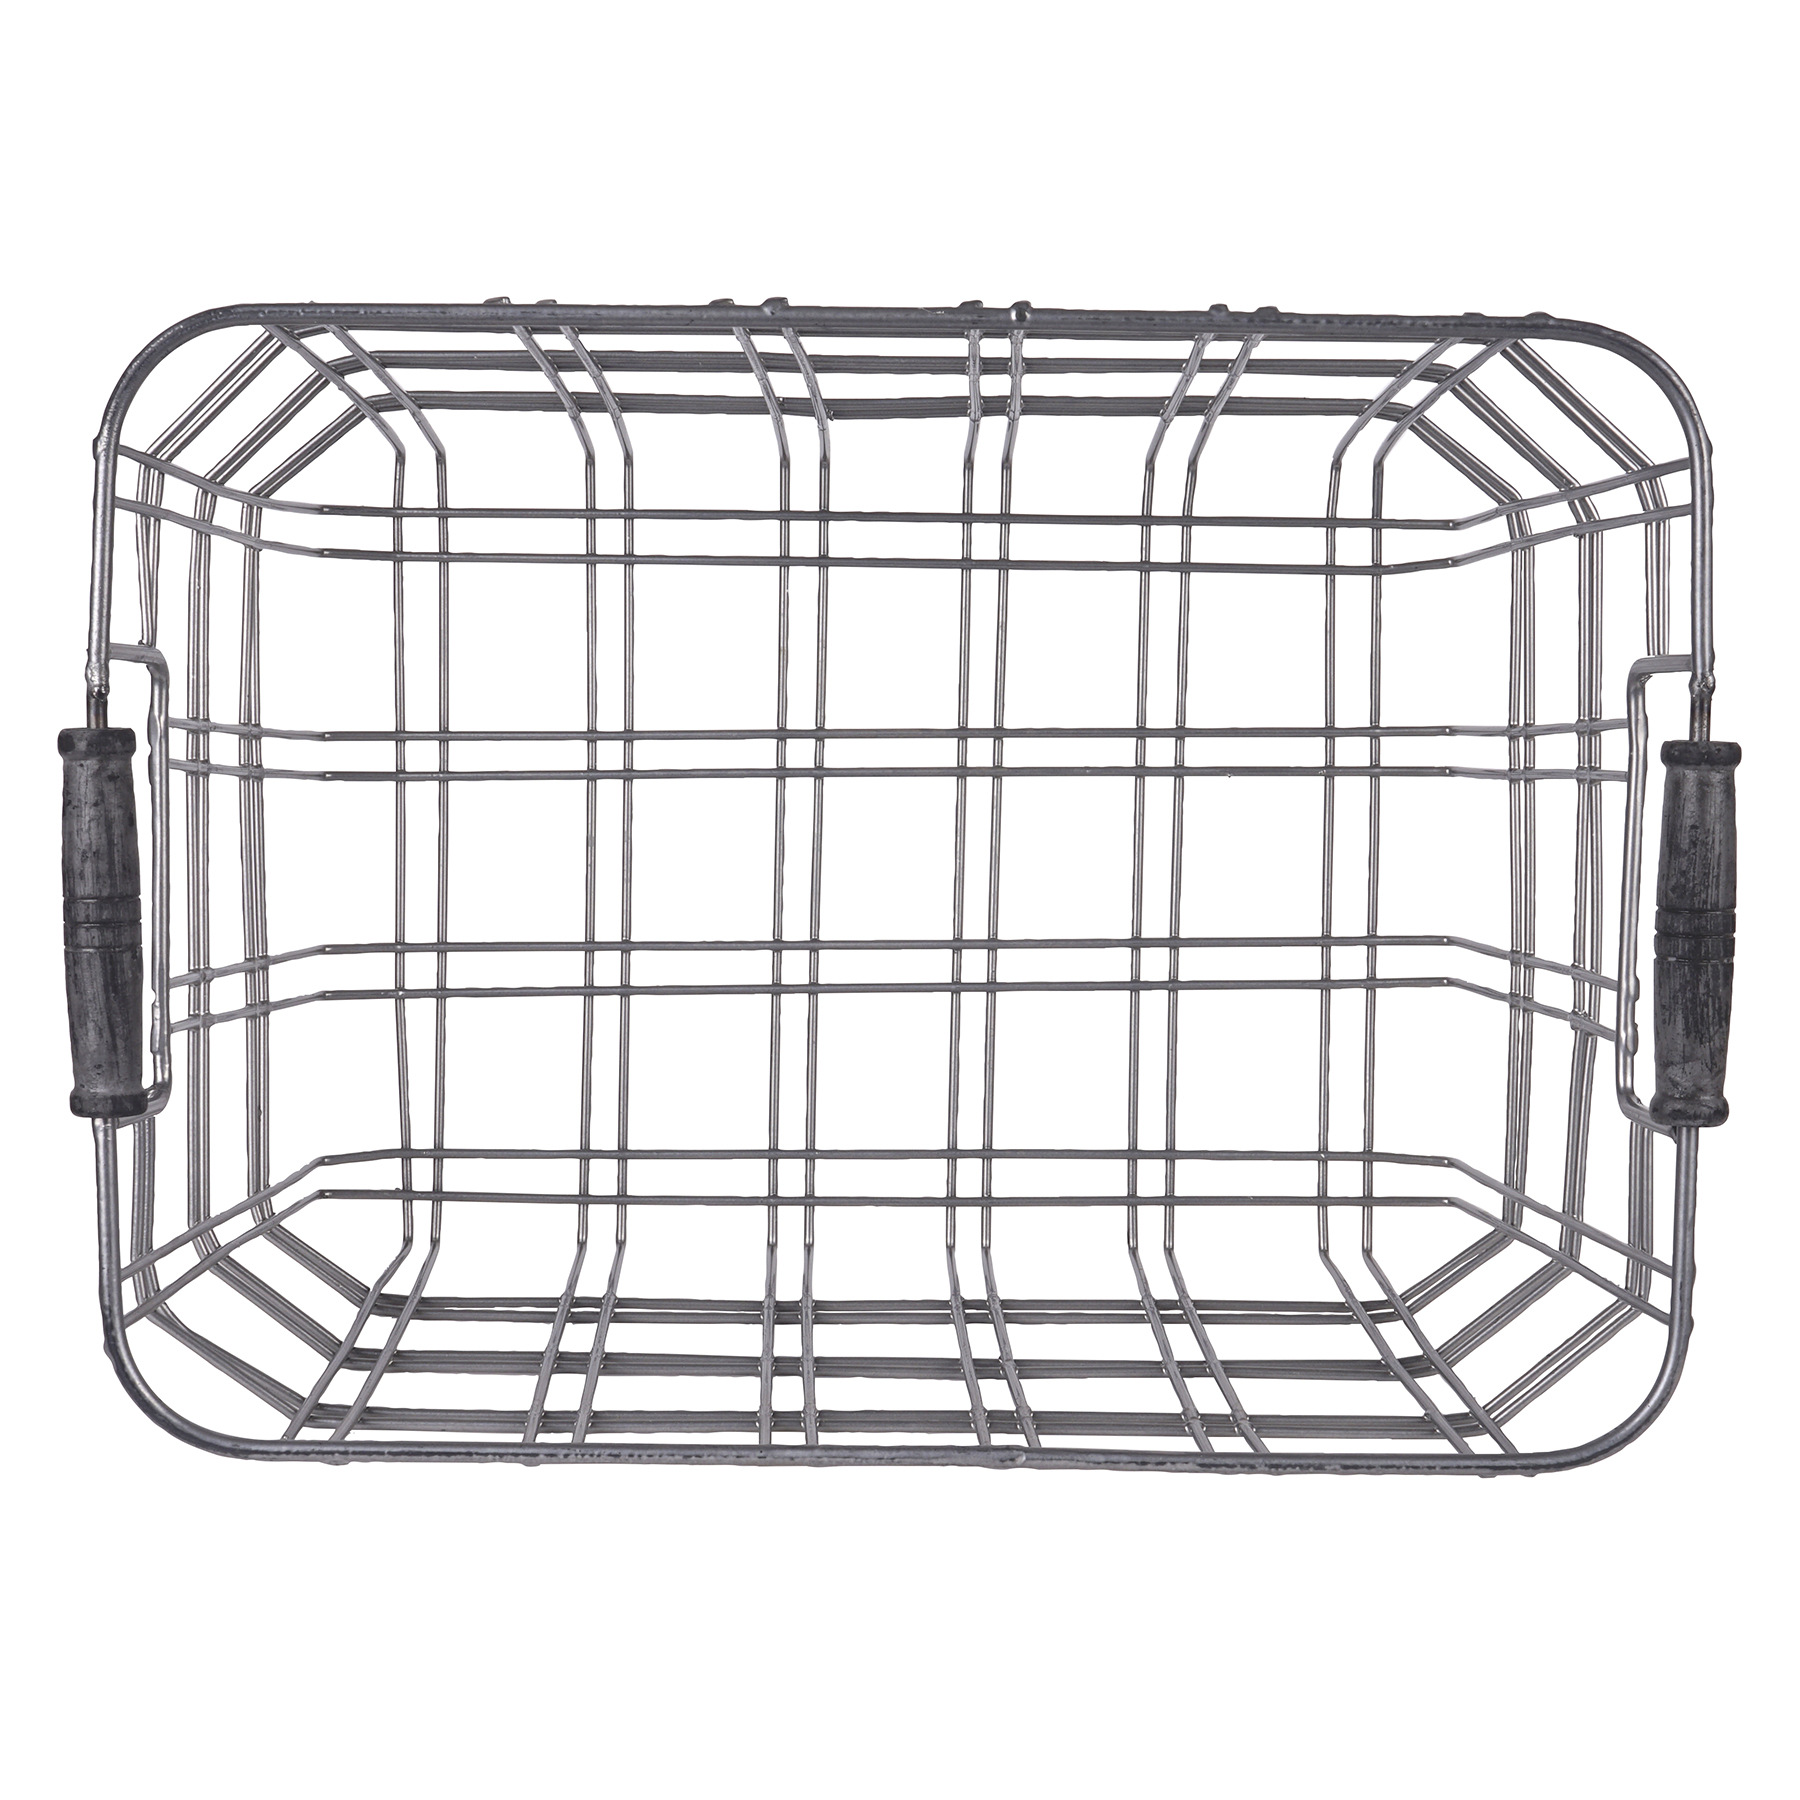 The Small Metal Wire Basket With Wooden Handles By Ashland At Baskets